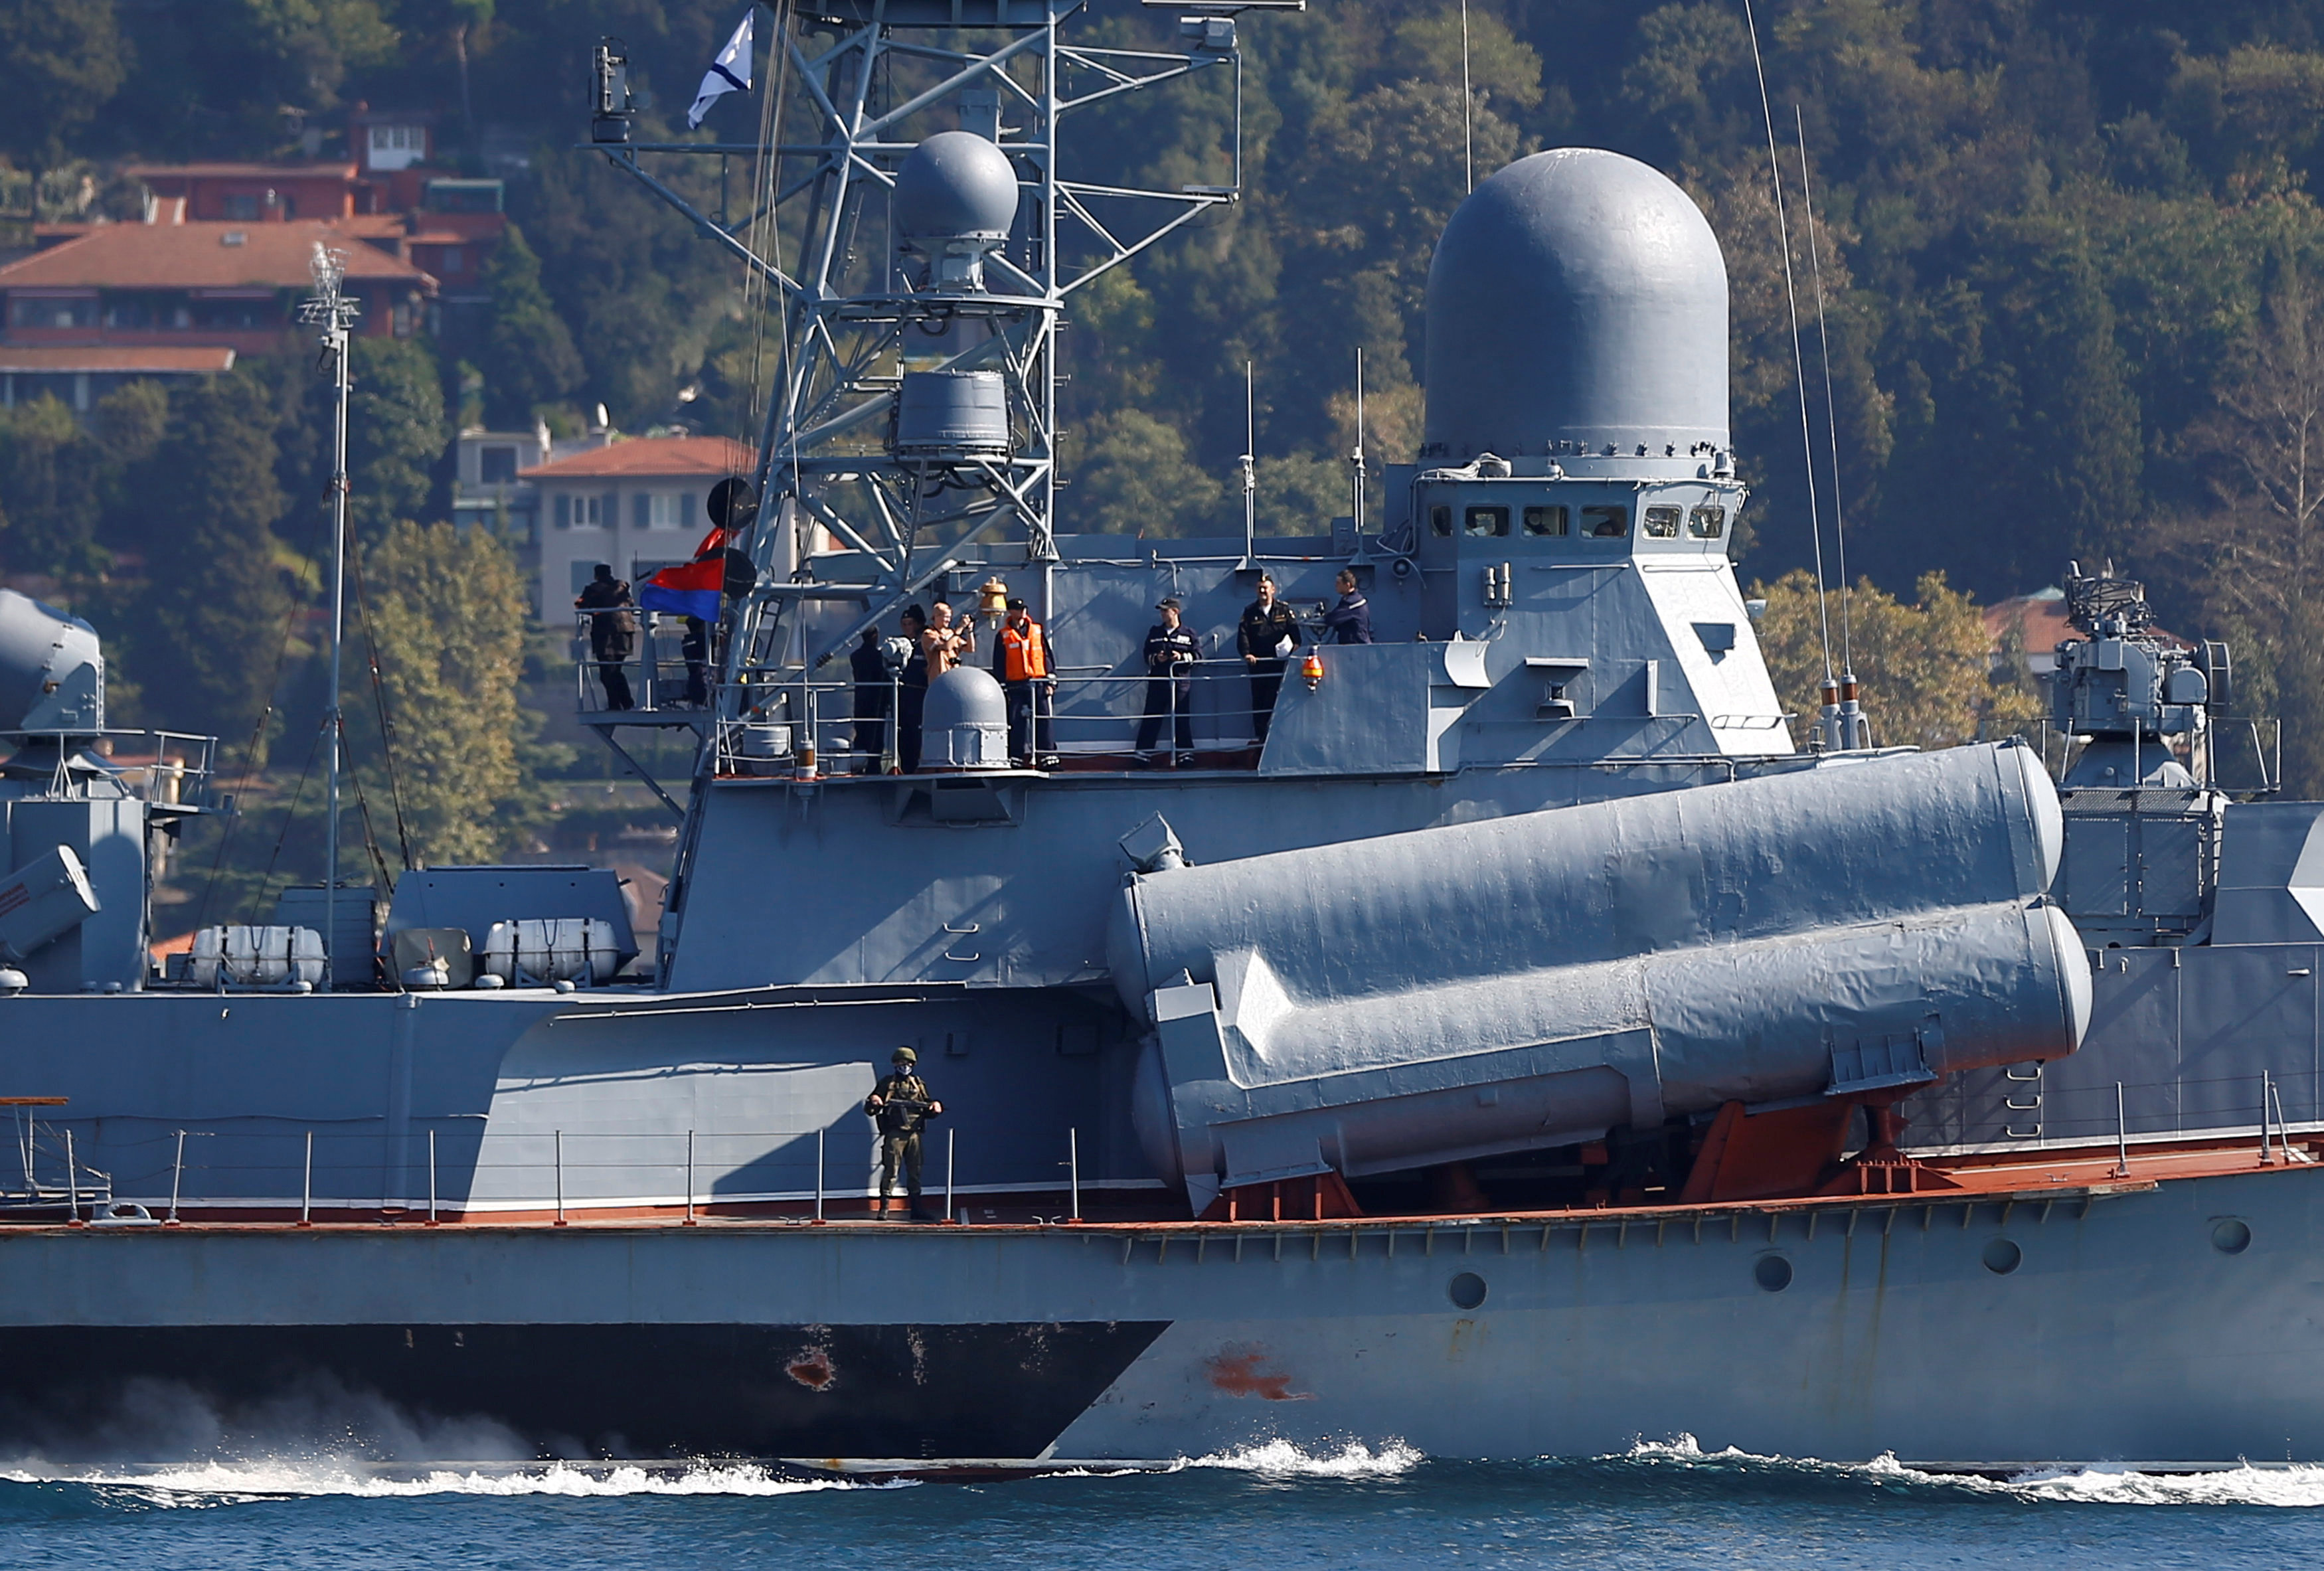 The Russian Navy's missile corvette Mirazh sails in the Bosphorus off Istanbul on its way to the Mediterranean Sea on Friday. | REUTERS